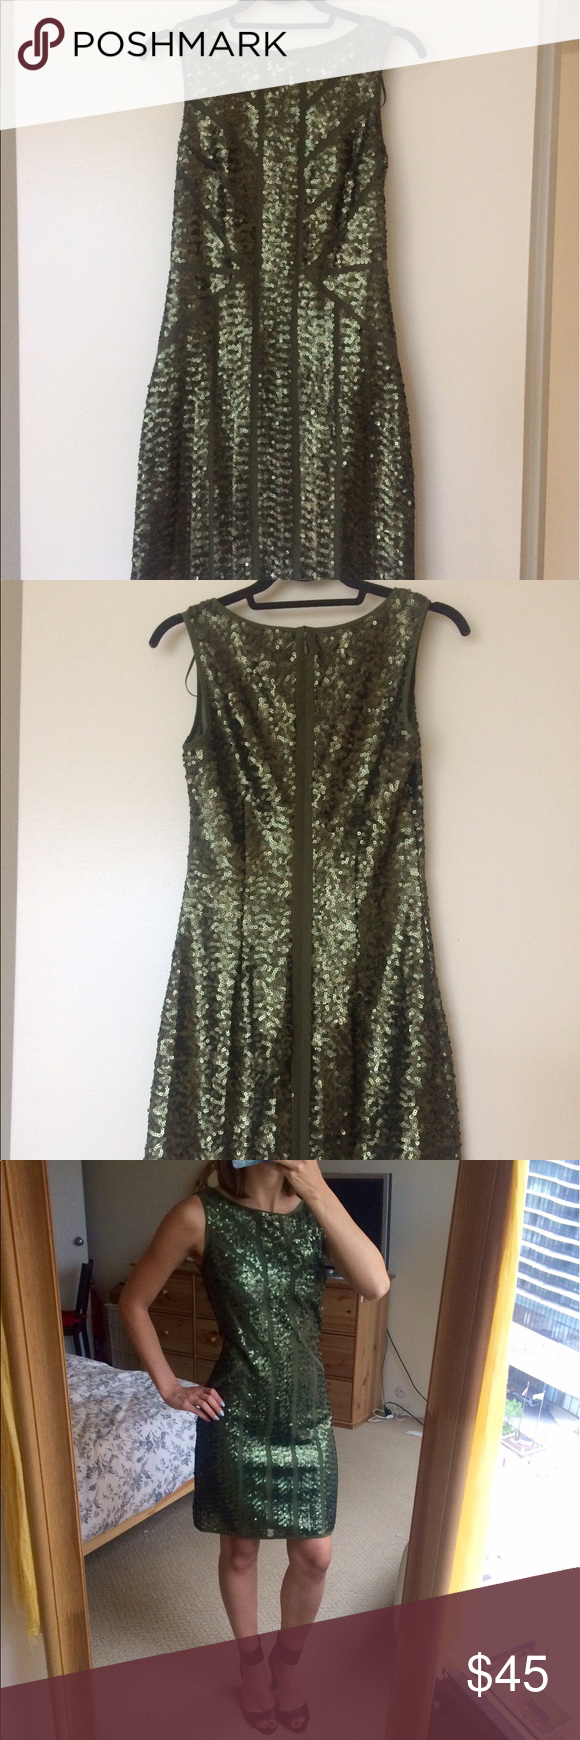 Vince Camuto Sequin Shift Dress Elegant sequin shift dress. Beautiful green color! Vince Camuto Dresses